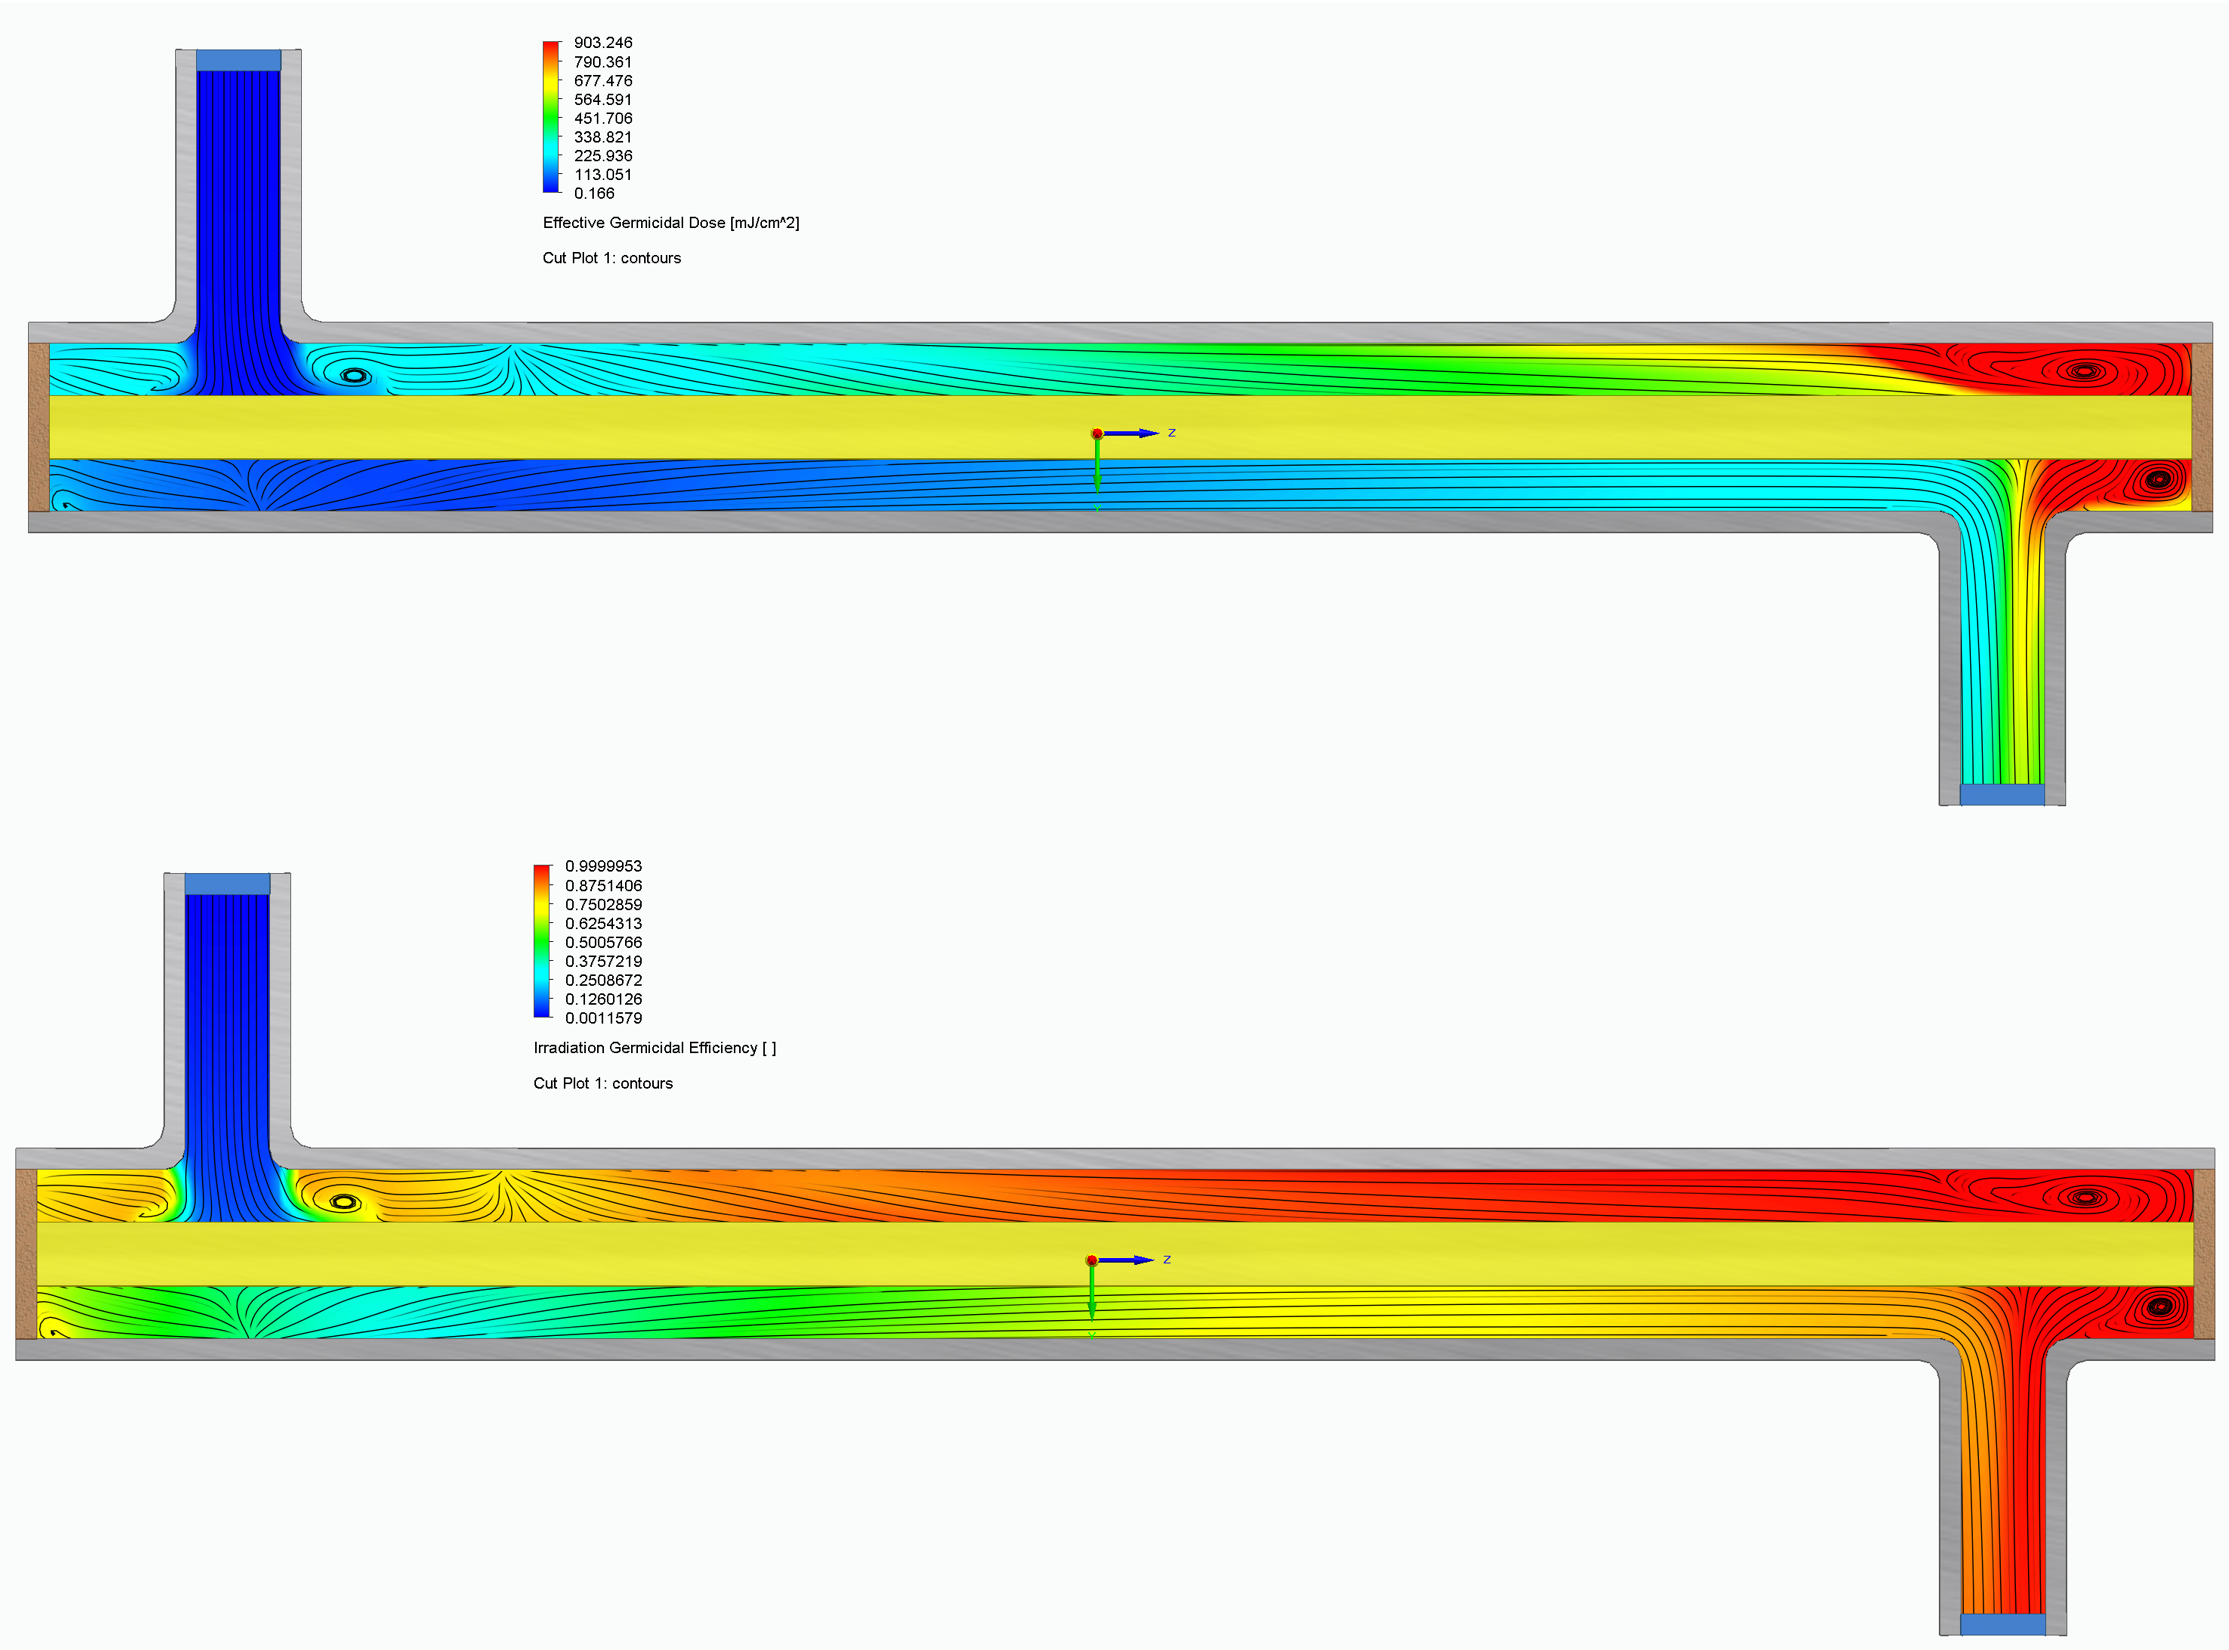 The image shows a water sterilization system simulation.